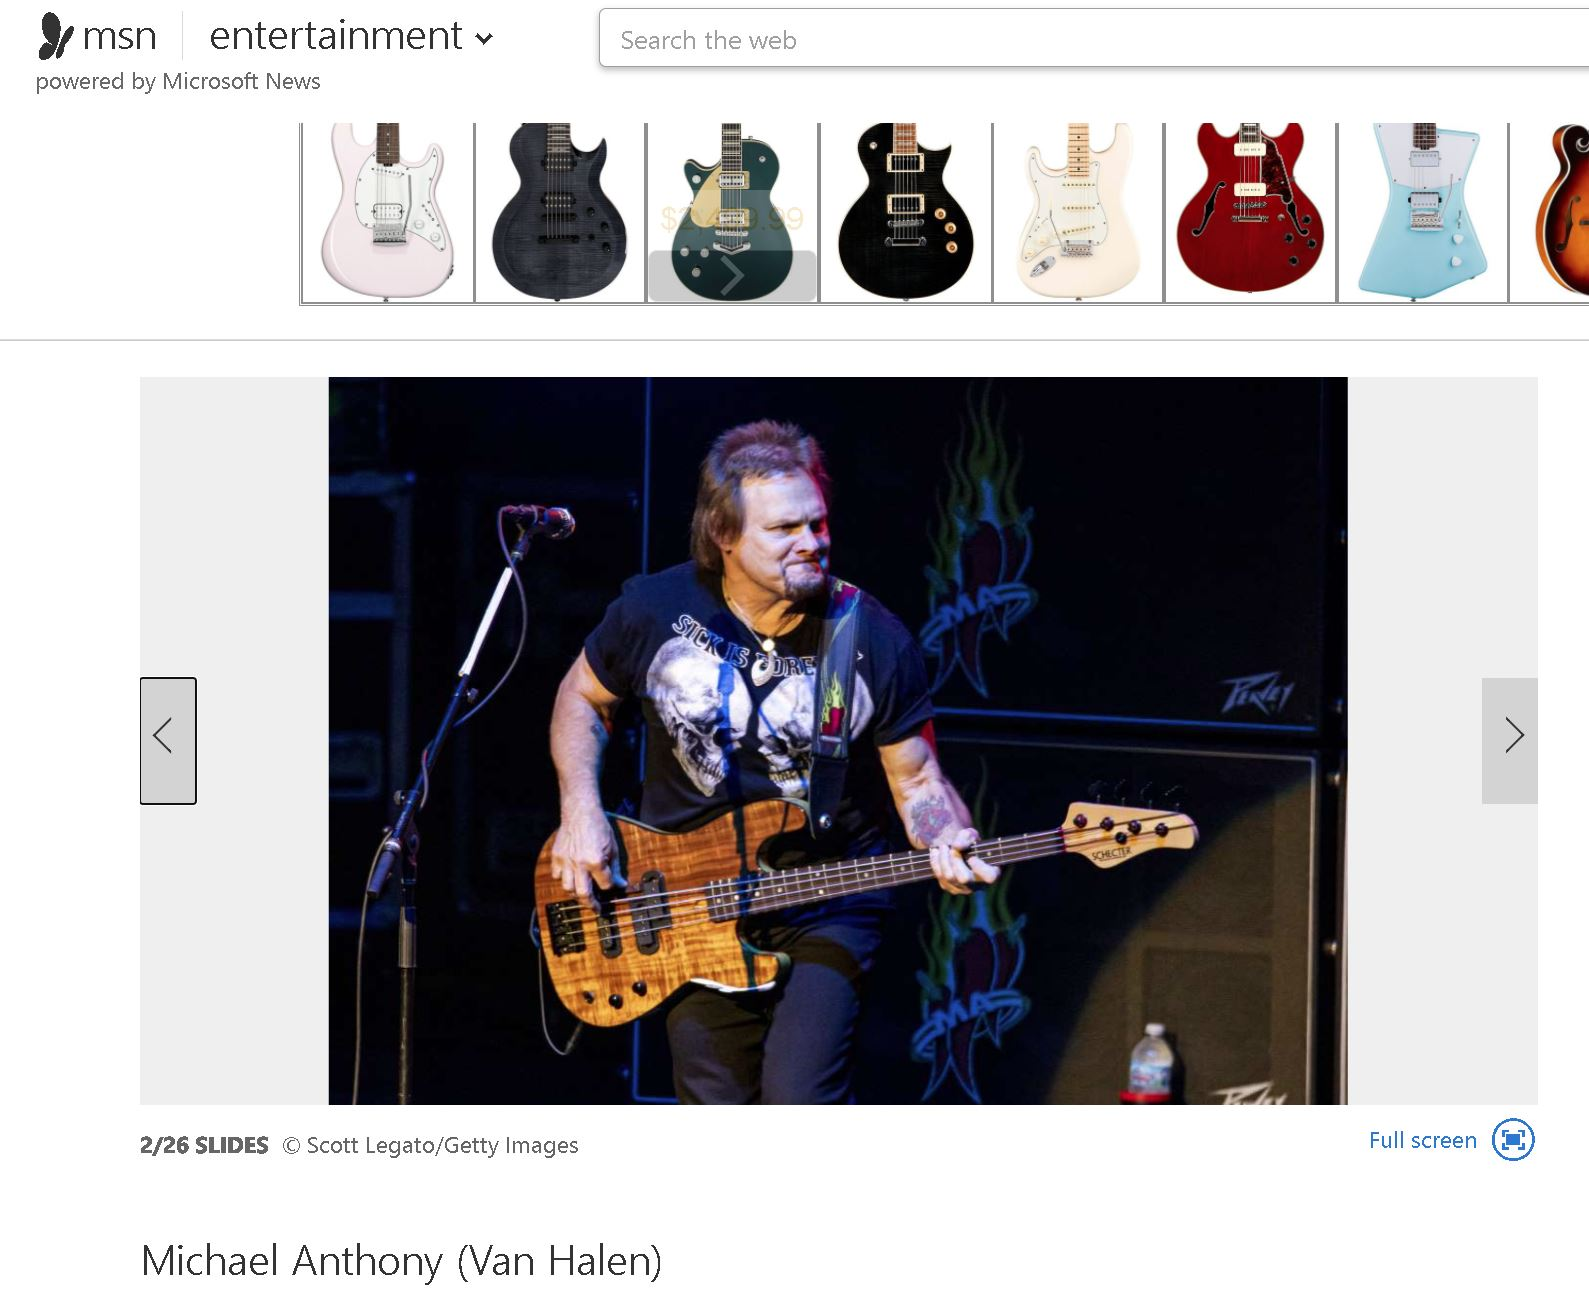 MSN - Michael Anthony